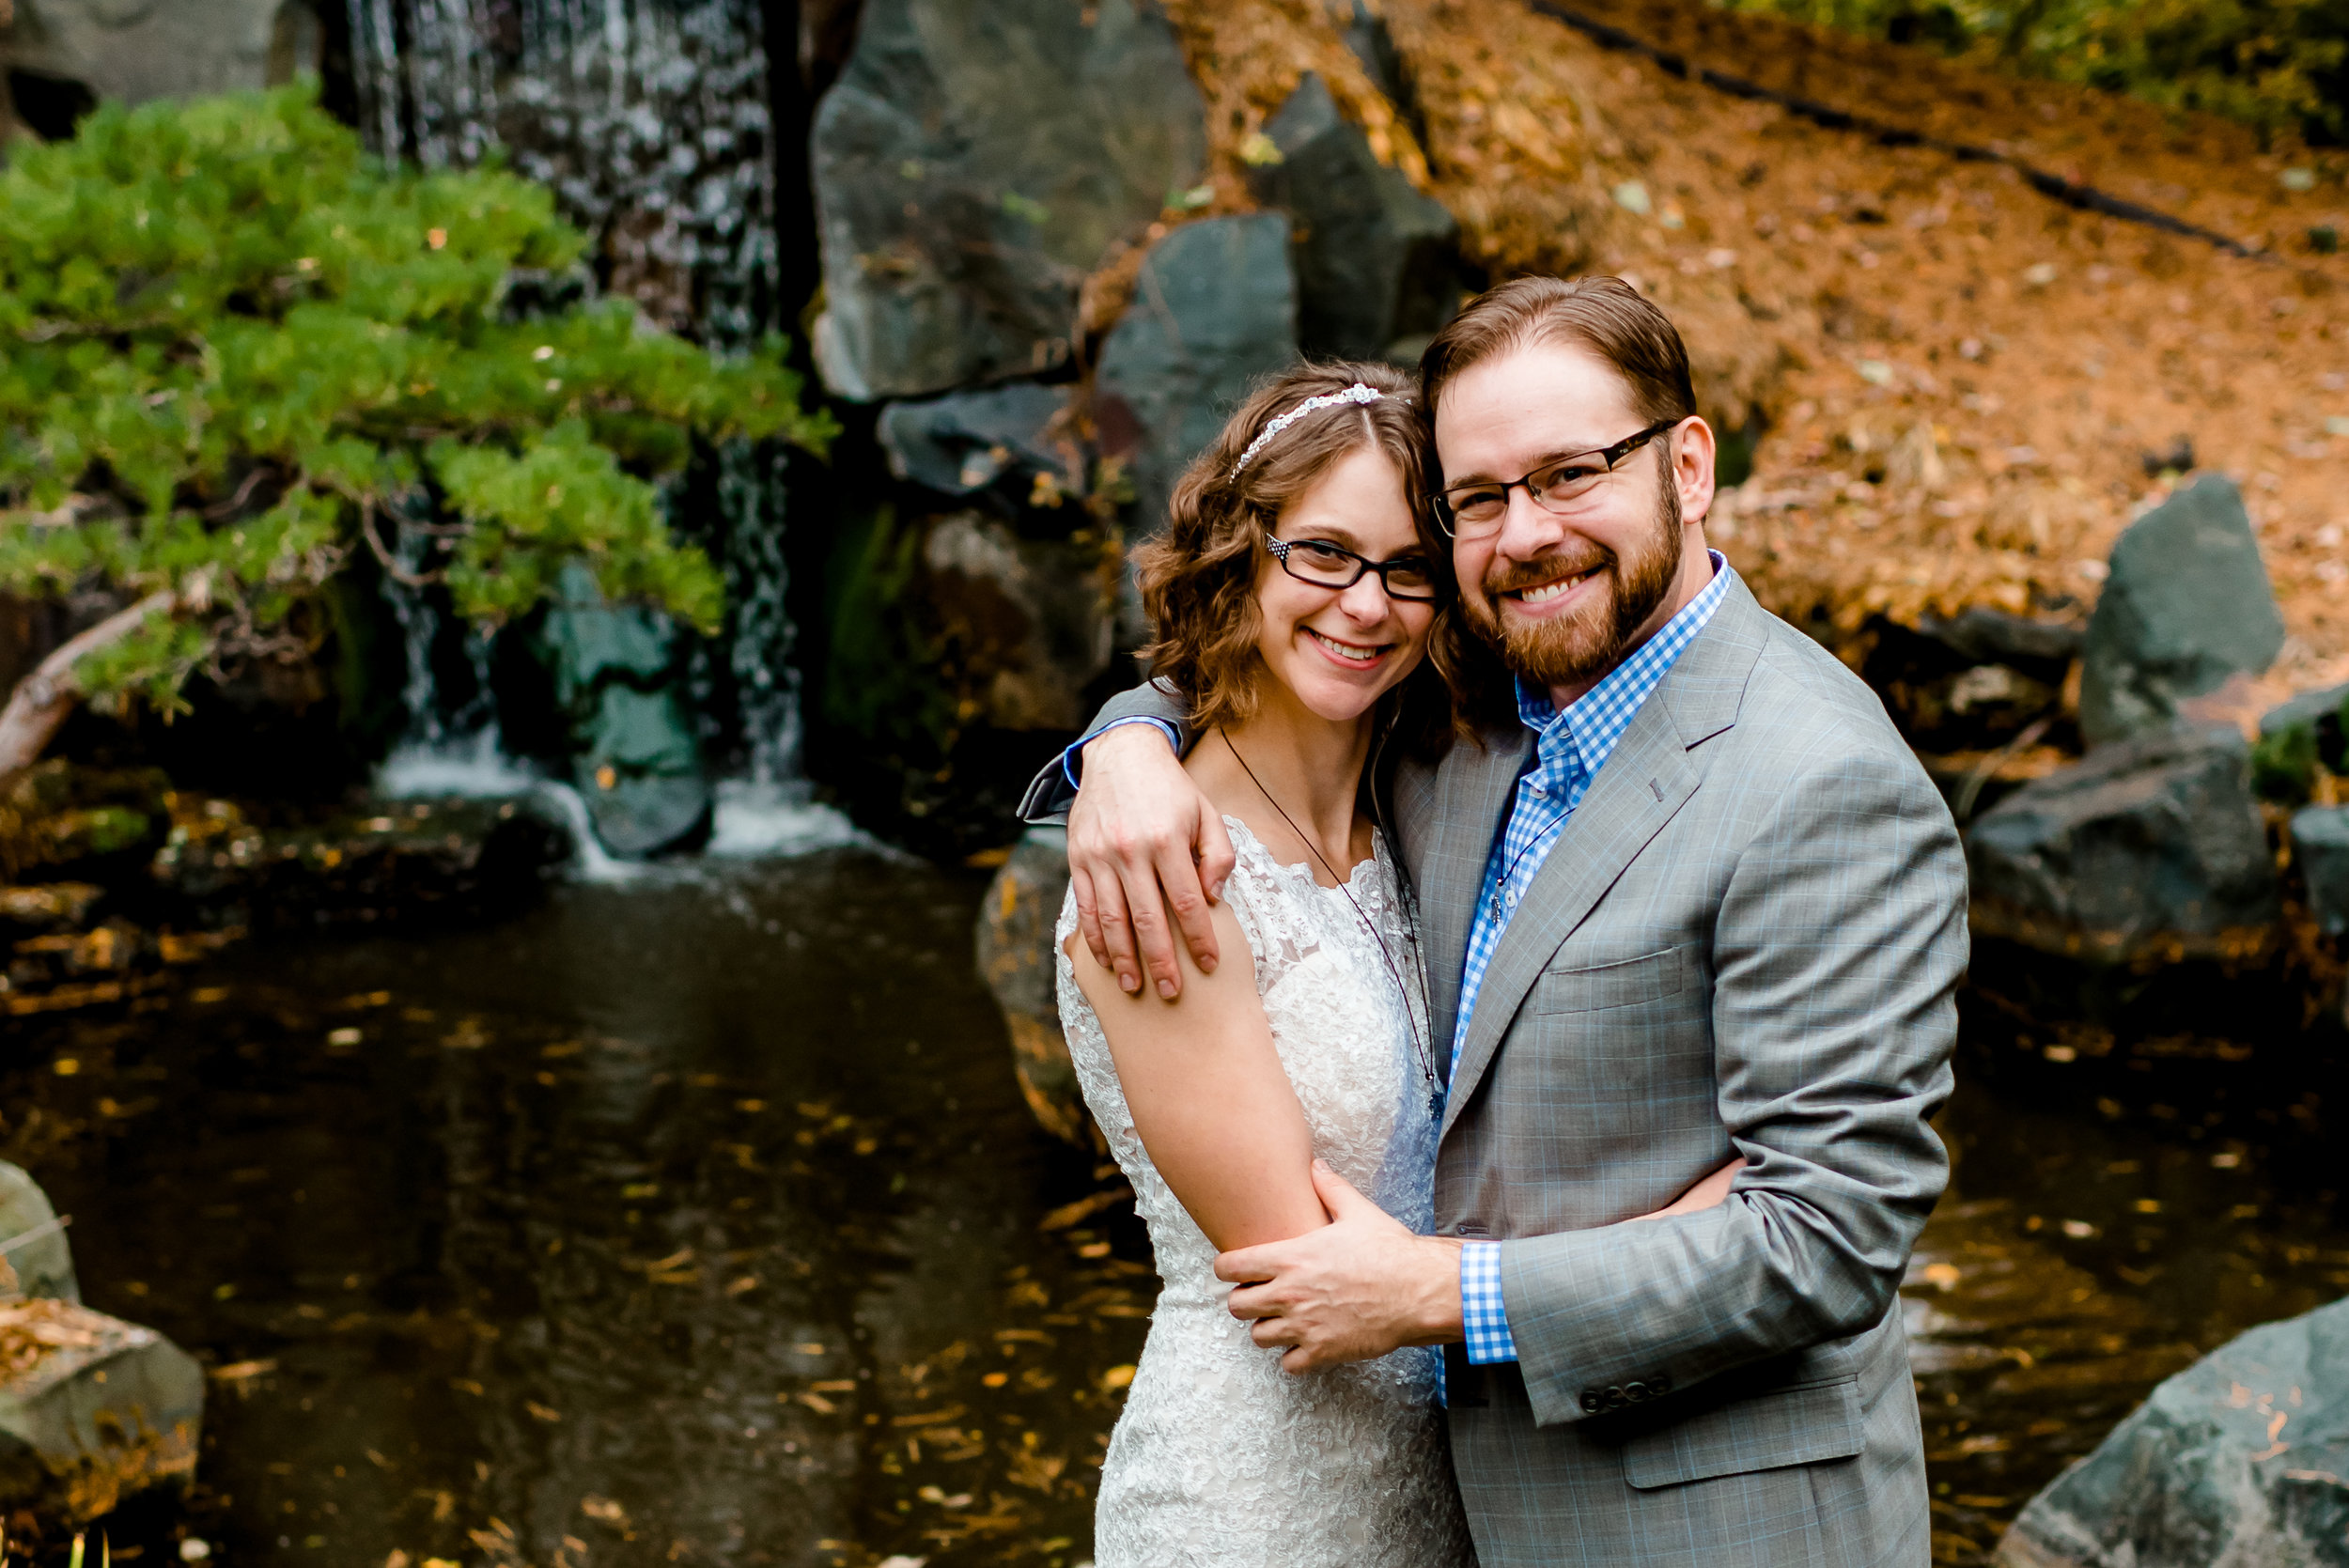 MN Landscape Arboretum Wedding - Japanese Gardens Waterfall Bride Groom - Chanhassen MN Wedding Photographer